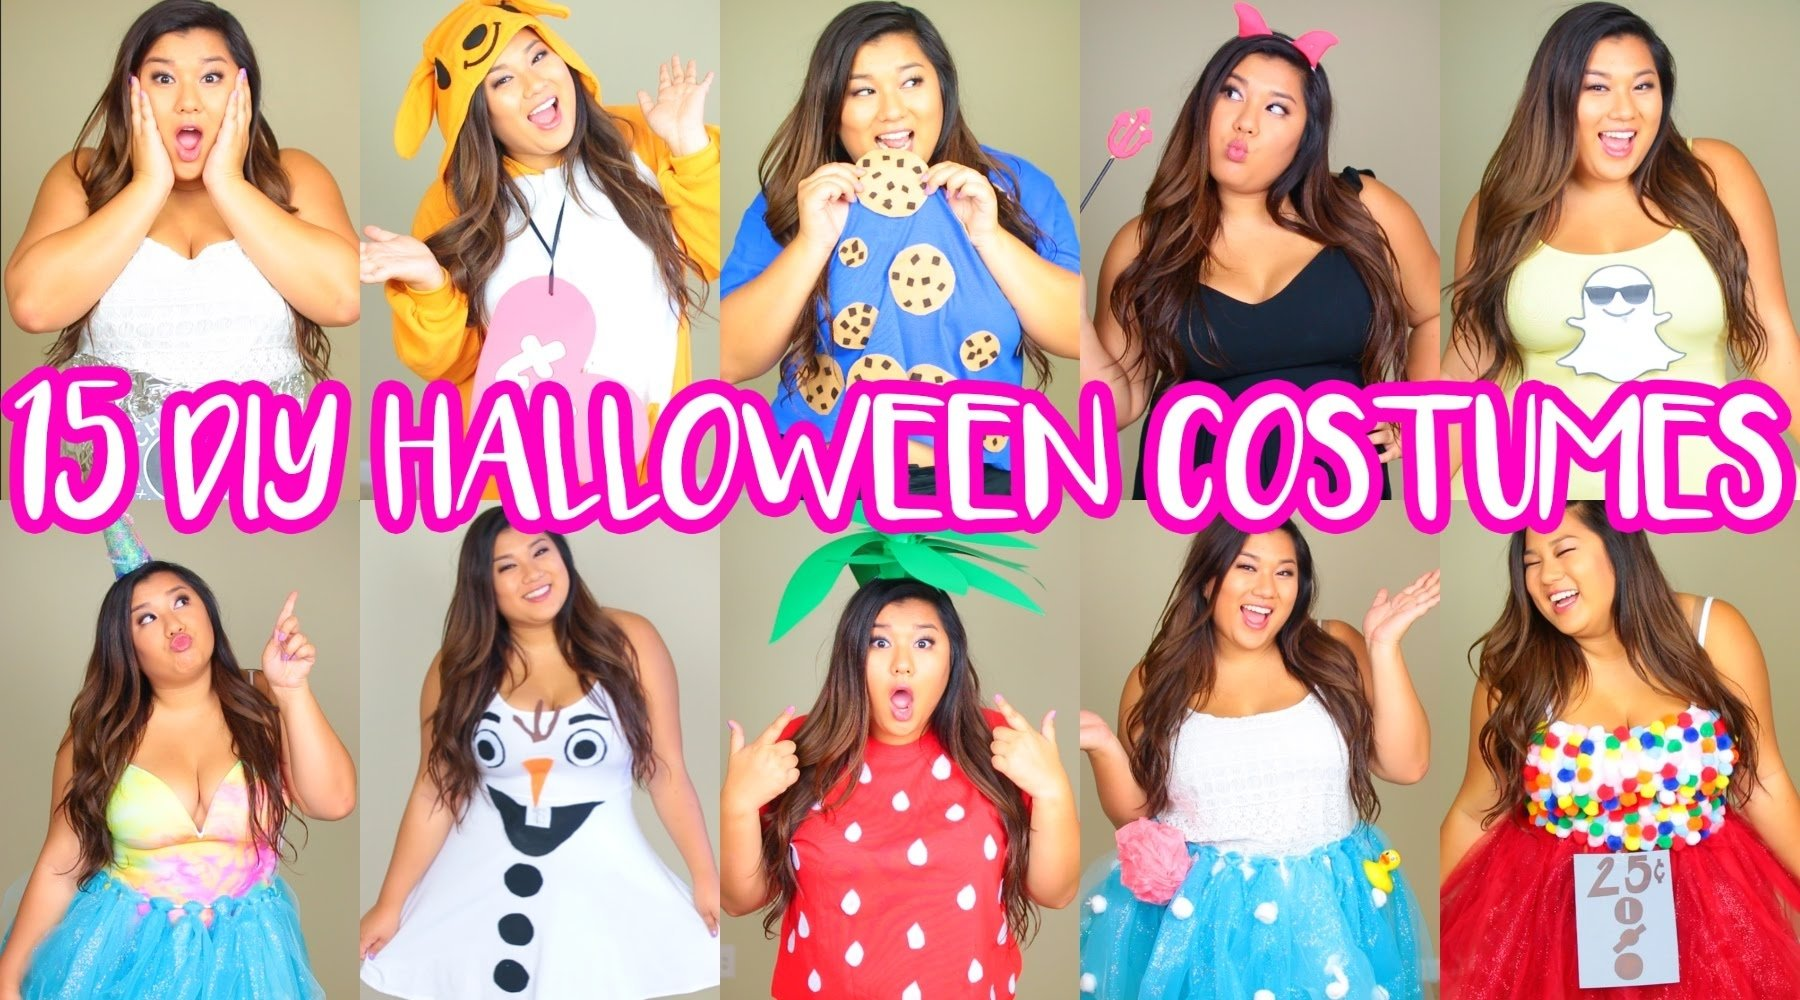 10 unique cute halloween costume ideas for girls